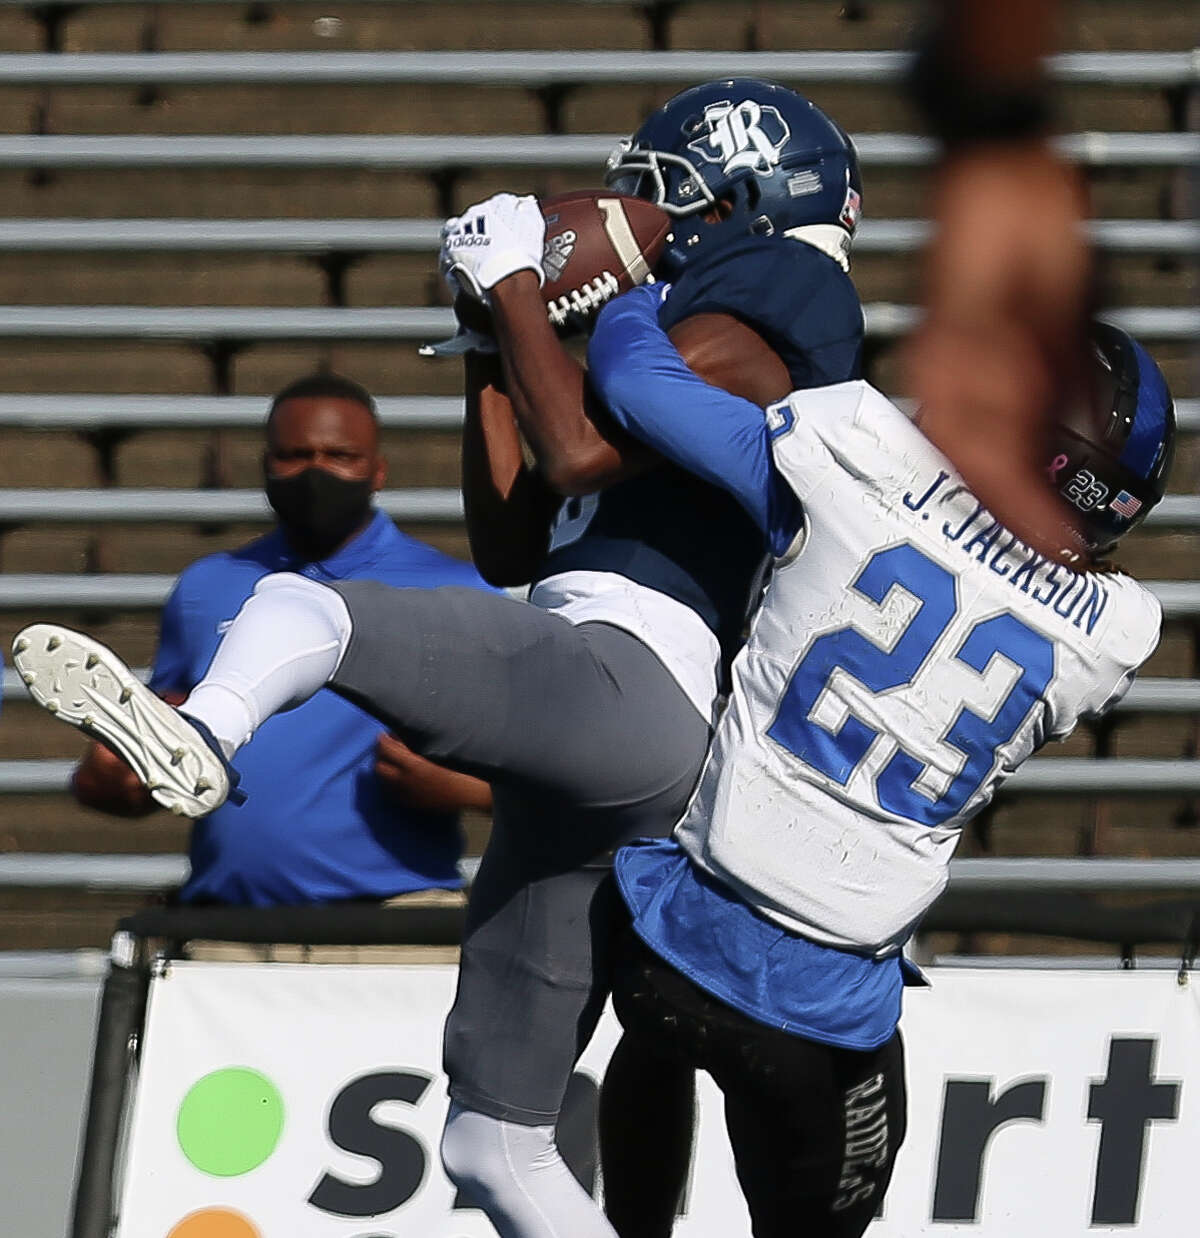 Rice Owls wide receiver August Pitre III (88) scores a touchdown with a catch while Middle Tennessee Blue Raiders cornerback Jalen Jackson (23) is trying to stop him during the second quarter of a CUSA conference game Saturday, Oct. 24, 2020, at Rice Stadium in Houston.